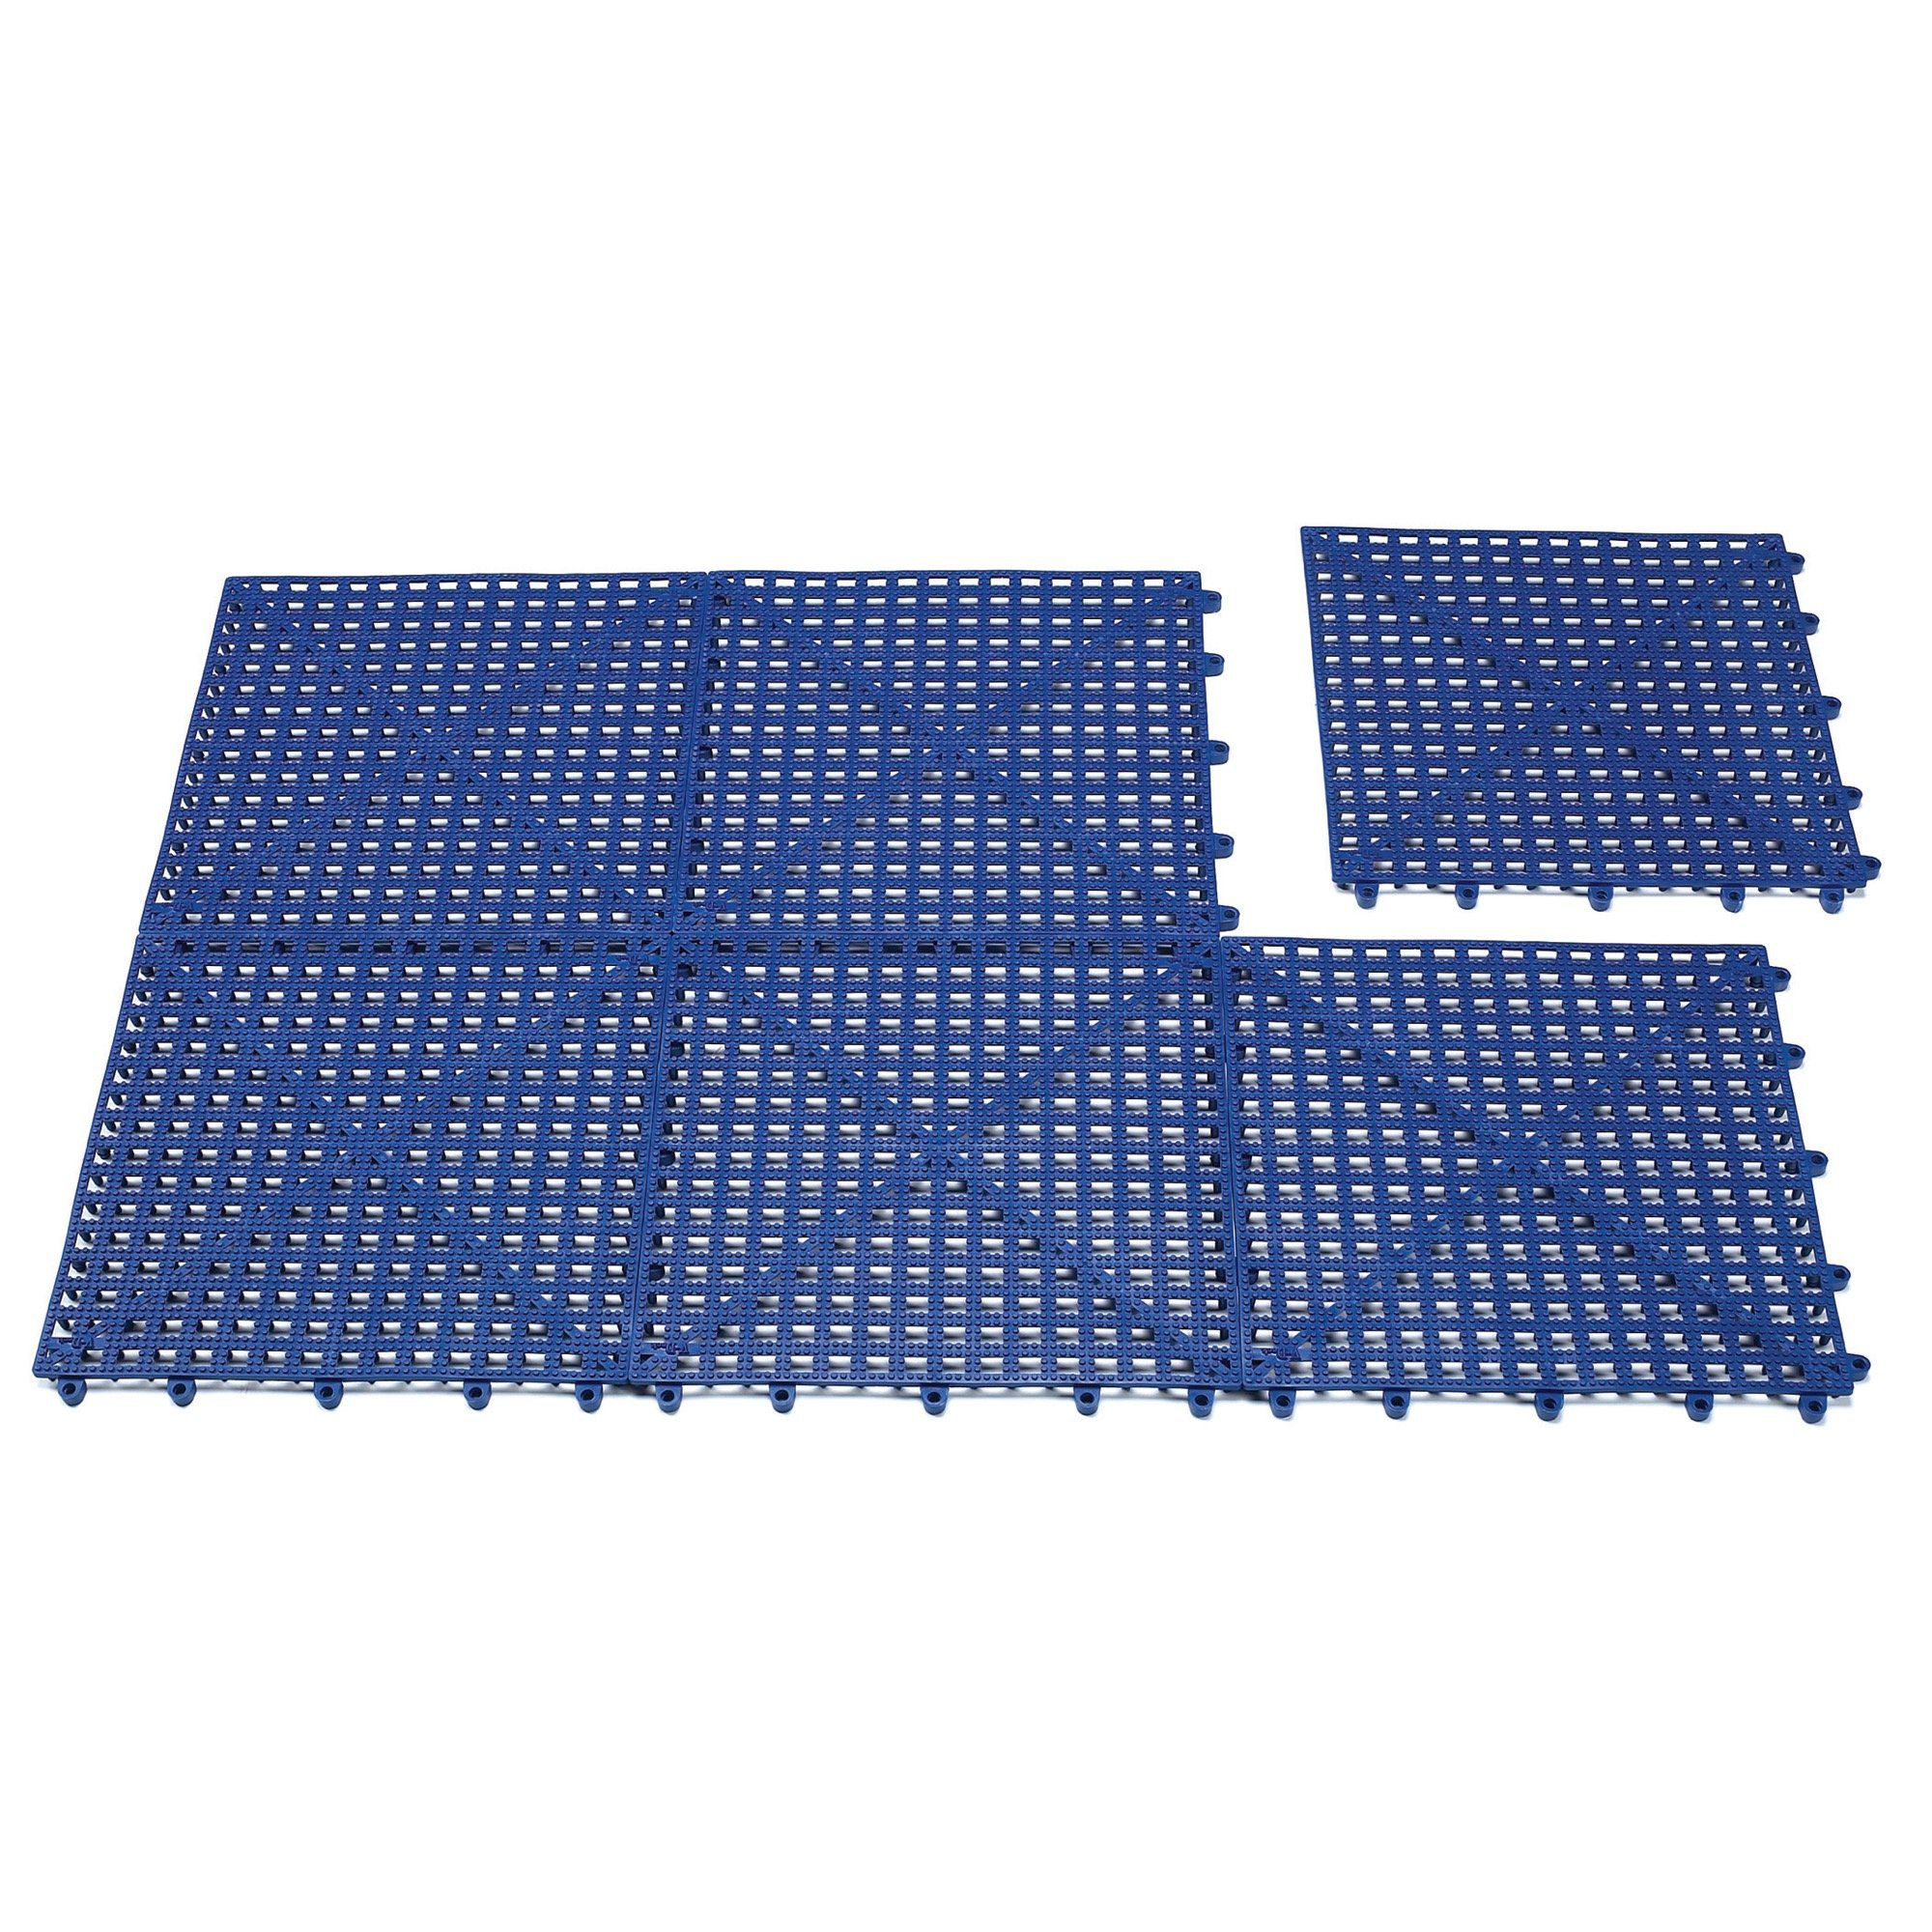 Top Performance  Floor Tiles for Groomers - Padded, Cushioned Floor Tiles Provide Unmatched Comfort and Traction for Professional Pet Groomers Throughout Their Workday, Blue by Top Performance (Image #1)